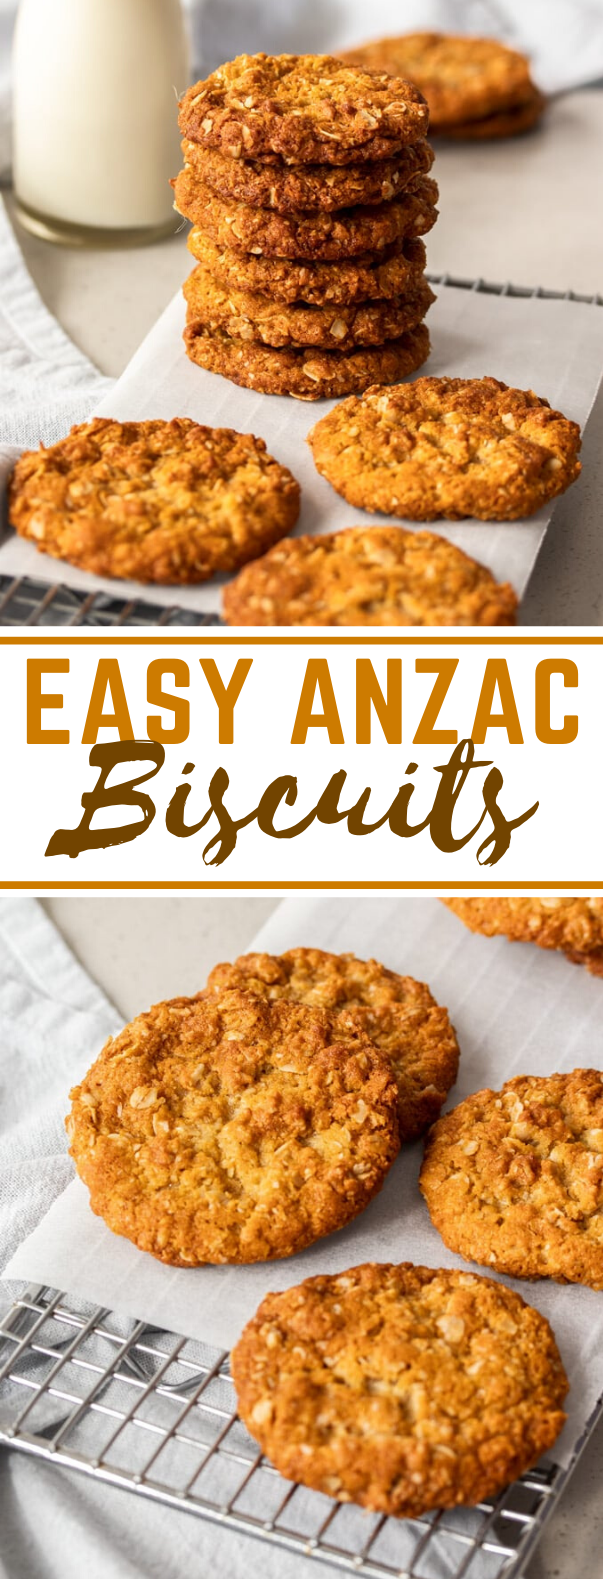 EASY ANZAC BISCUITS #cookies #desserts